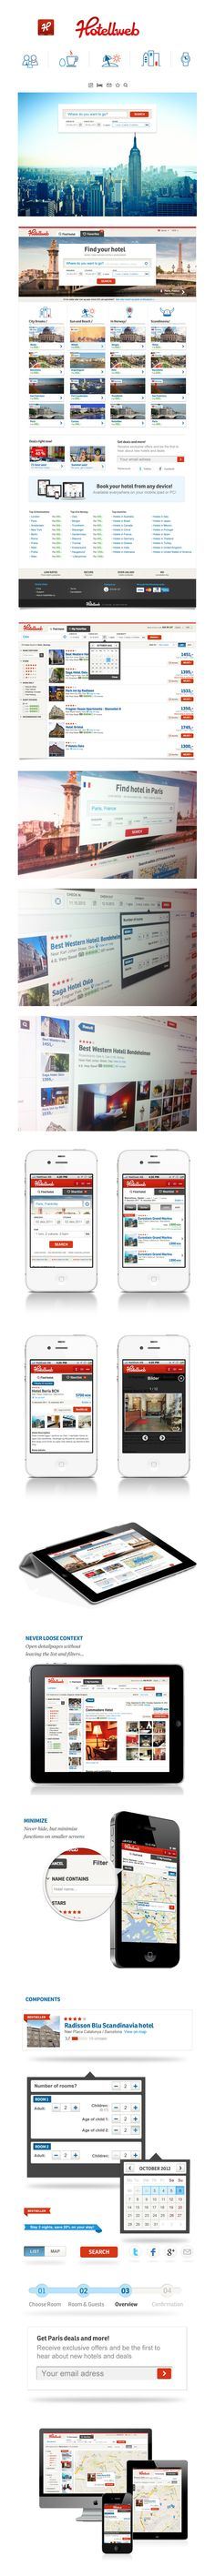 Hotellweb.no on the Behance Network